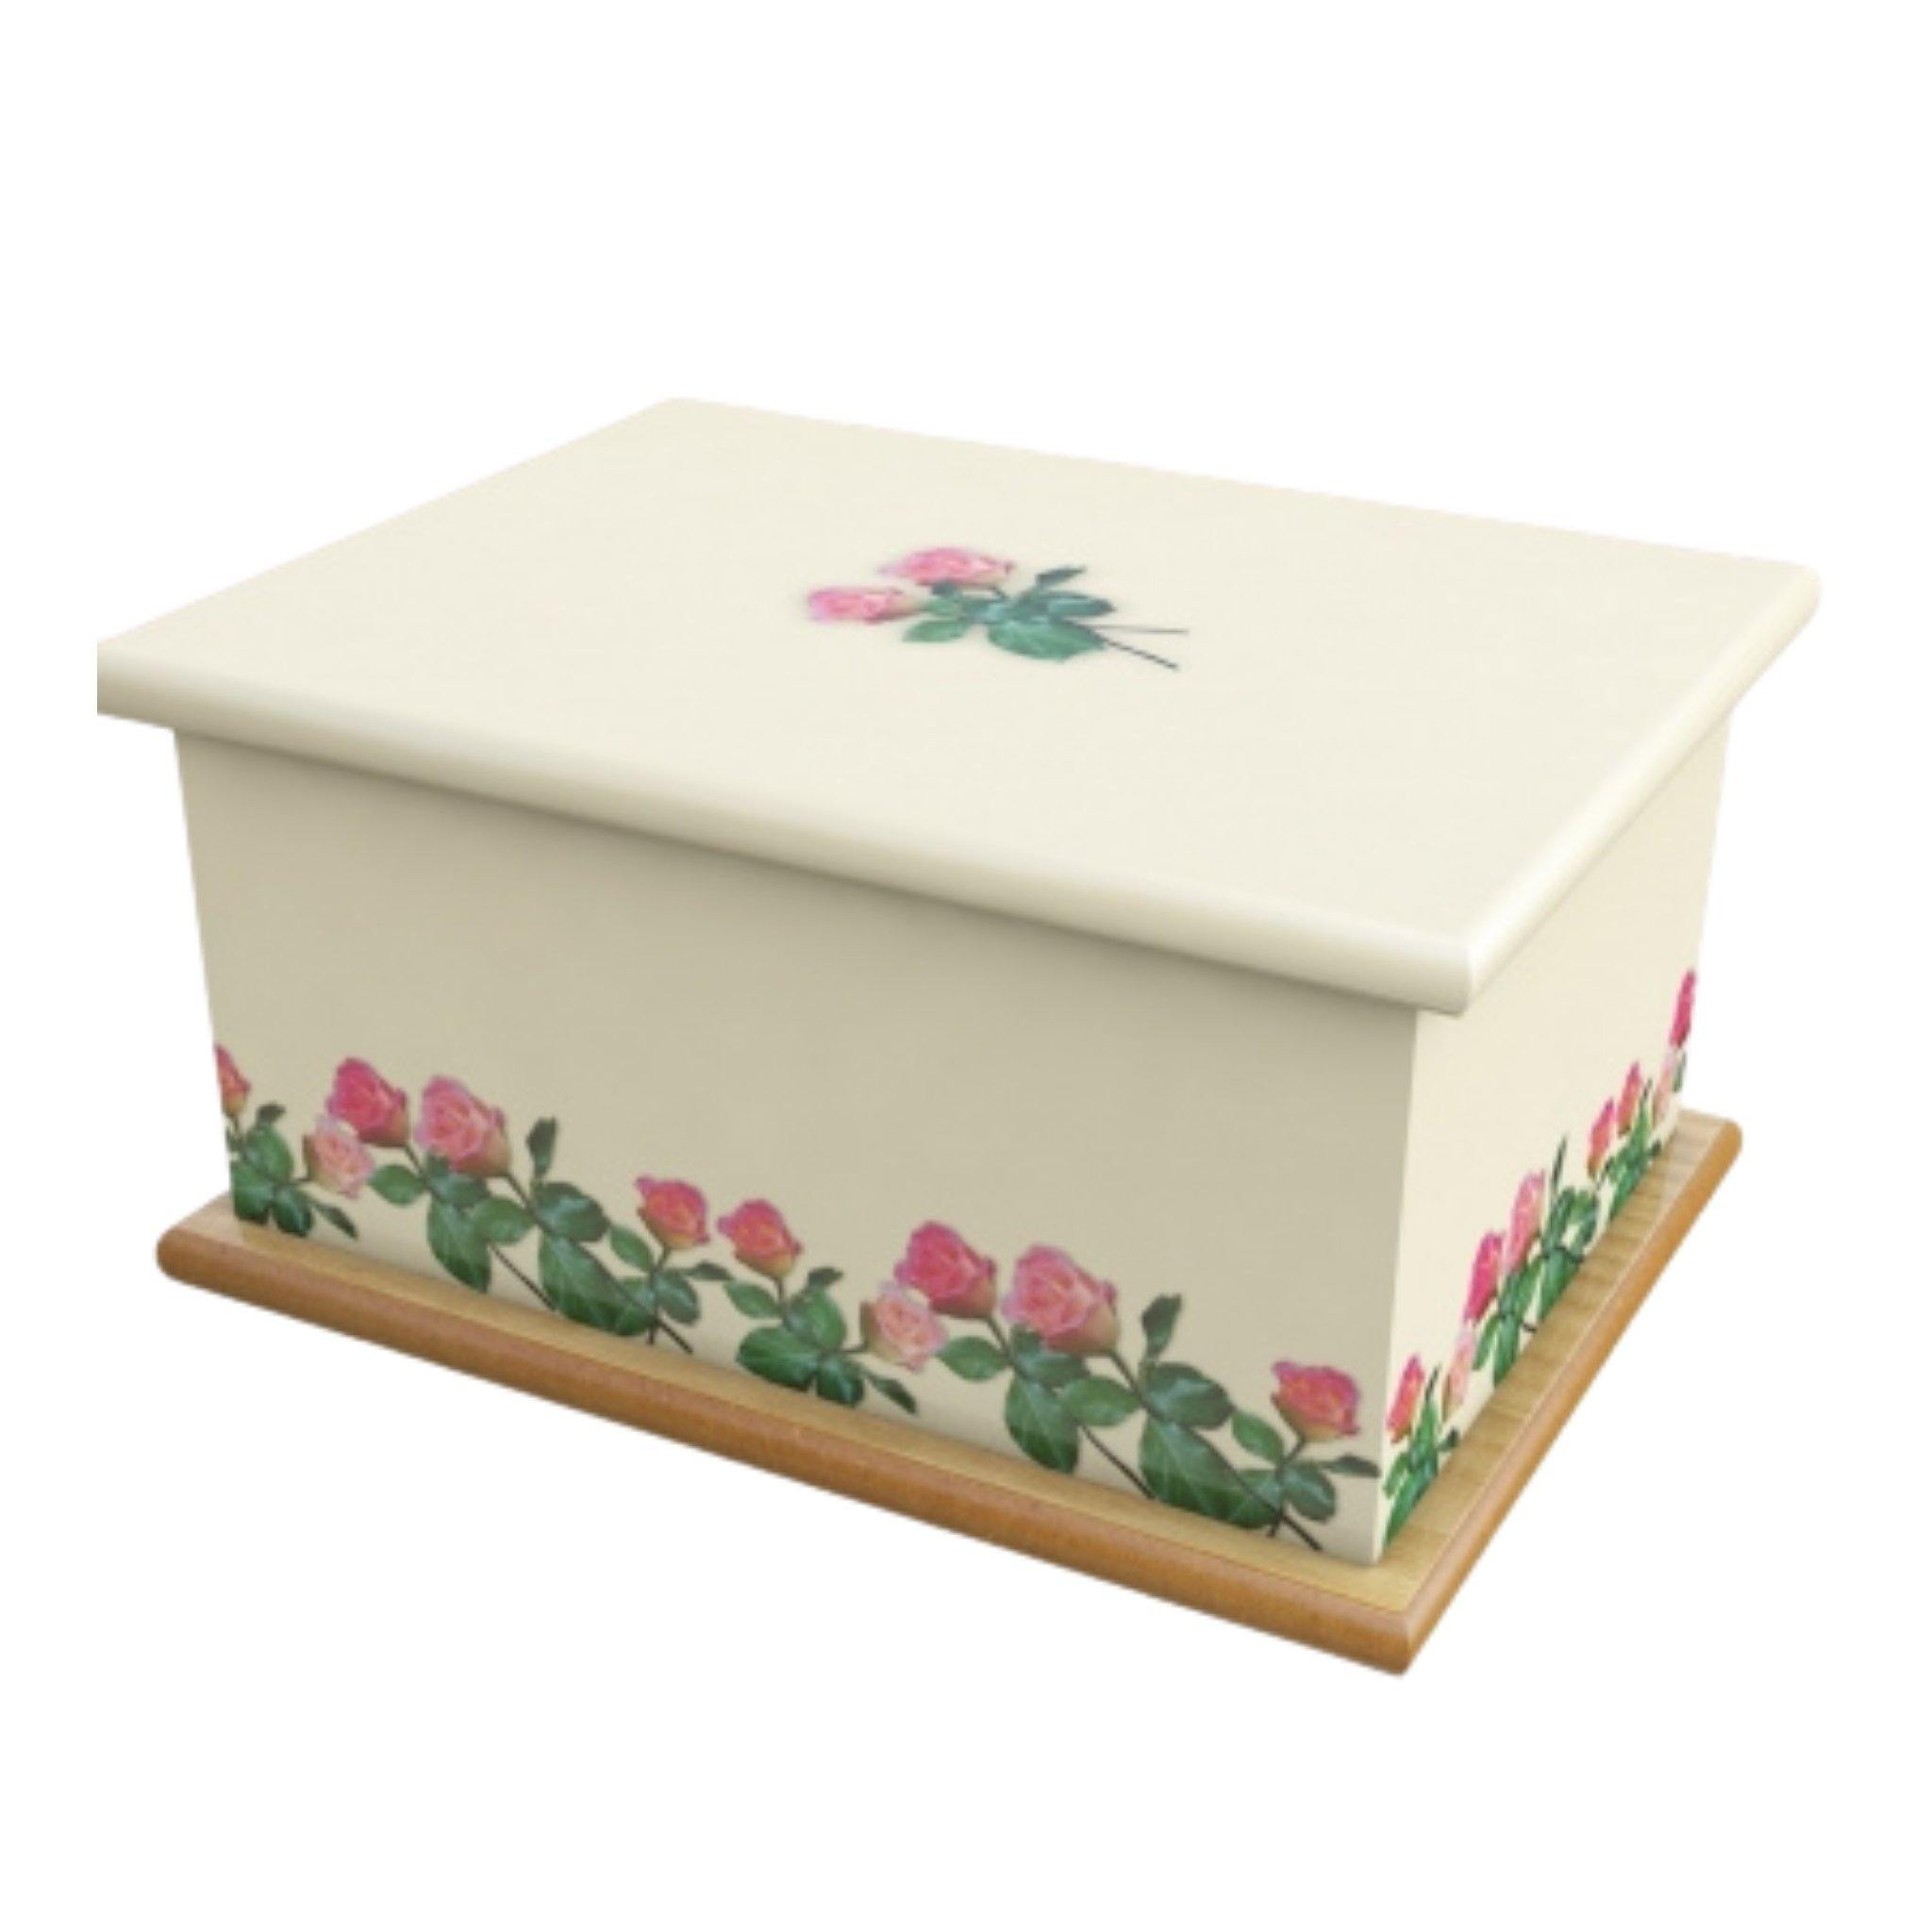 Wooden Urn Cream Roses Adult - Urns UK